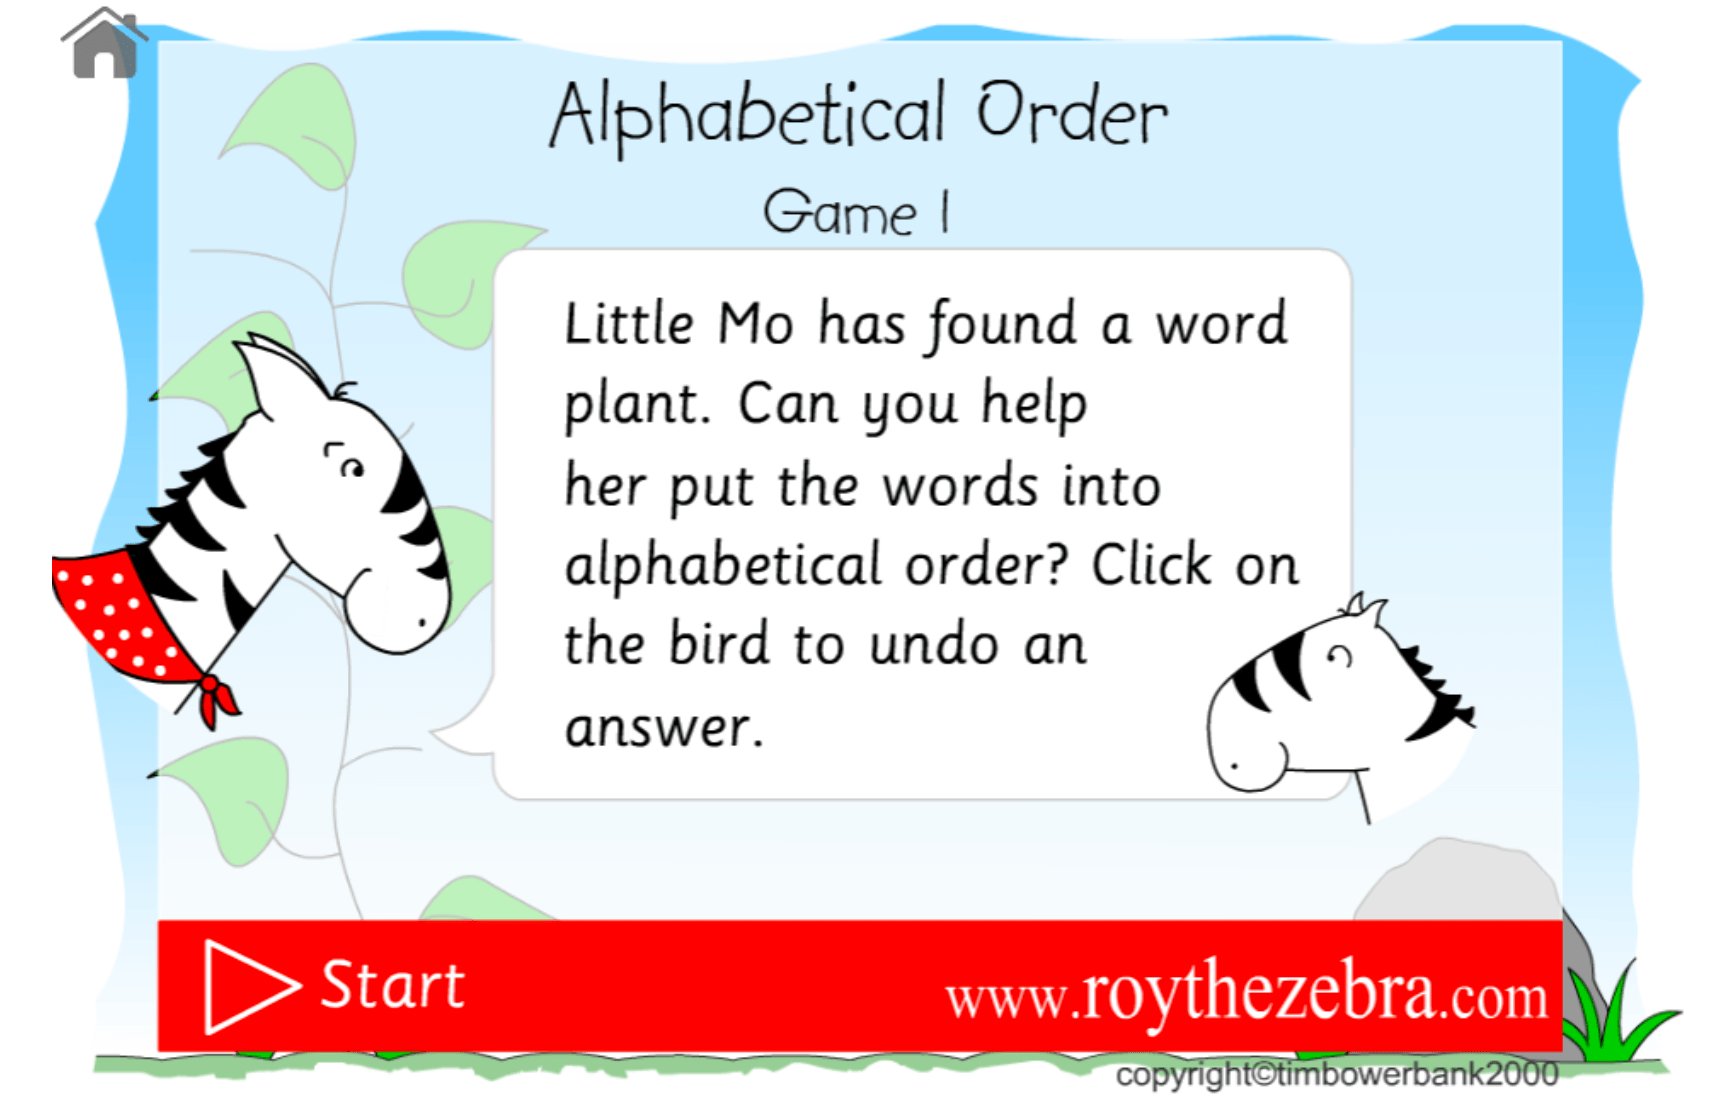 Alphabetical Order Game